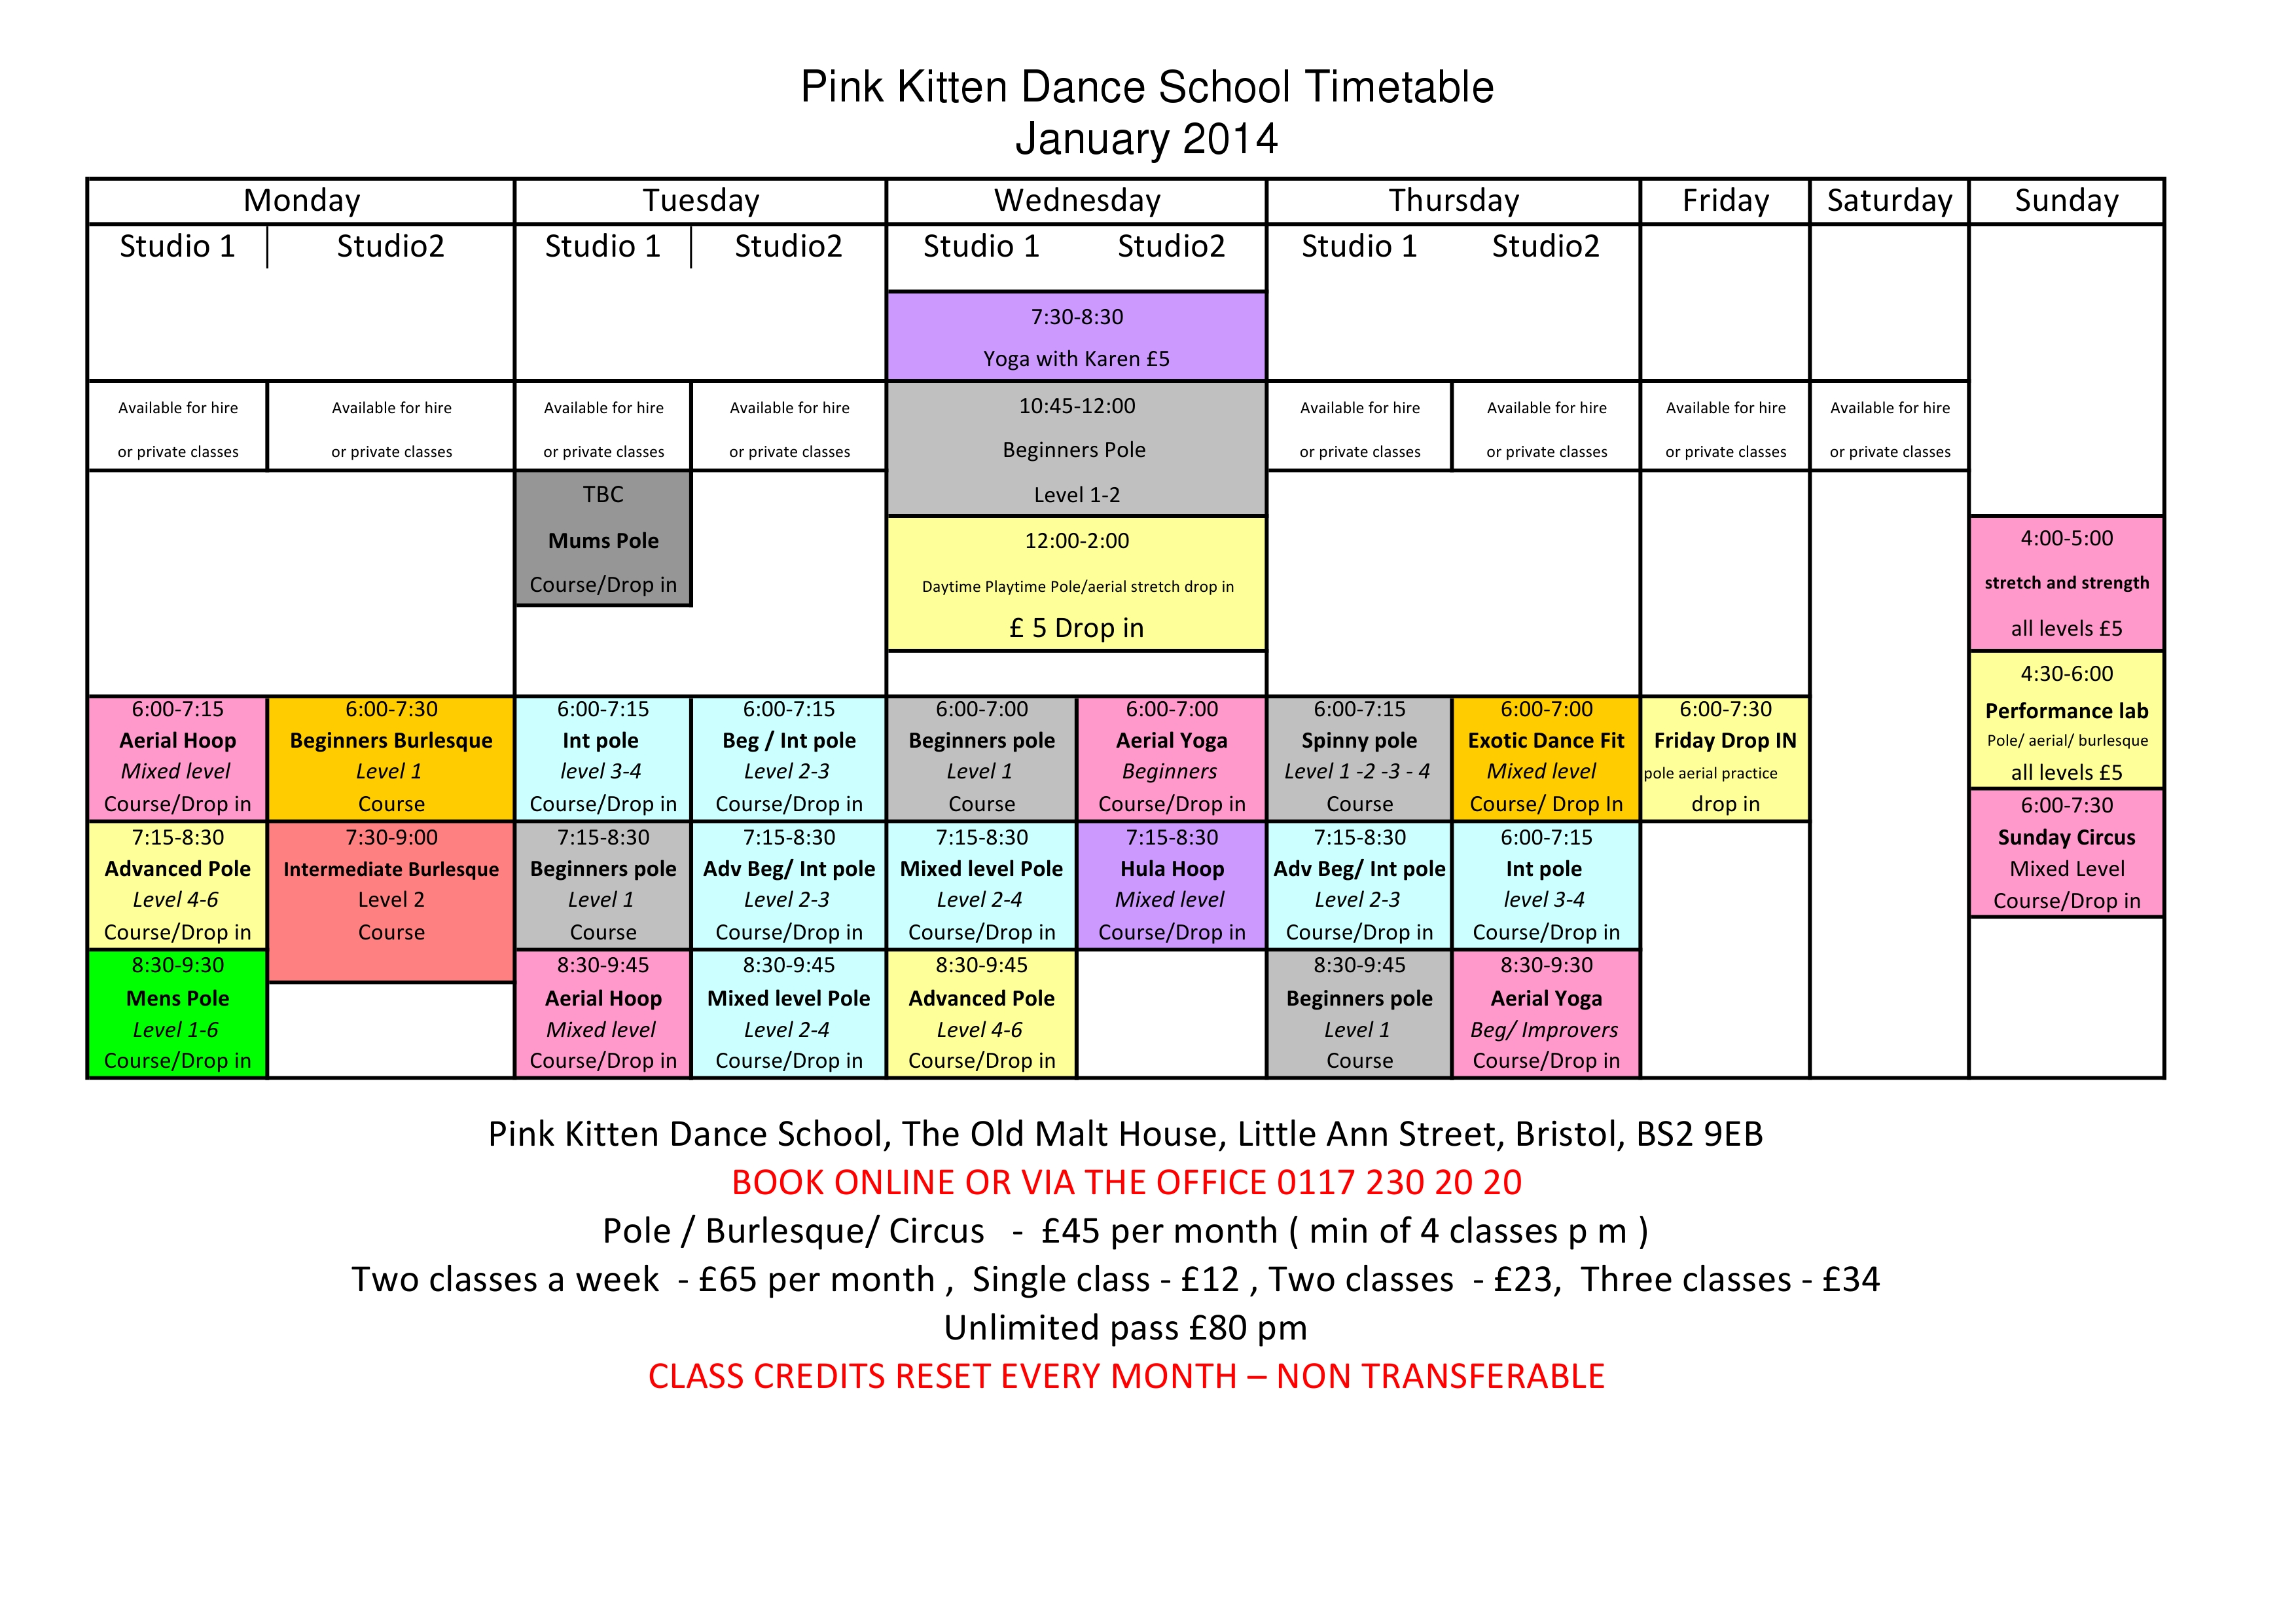 2014 timetable